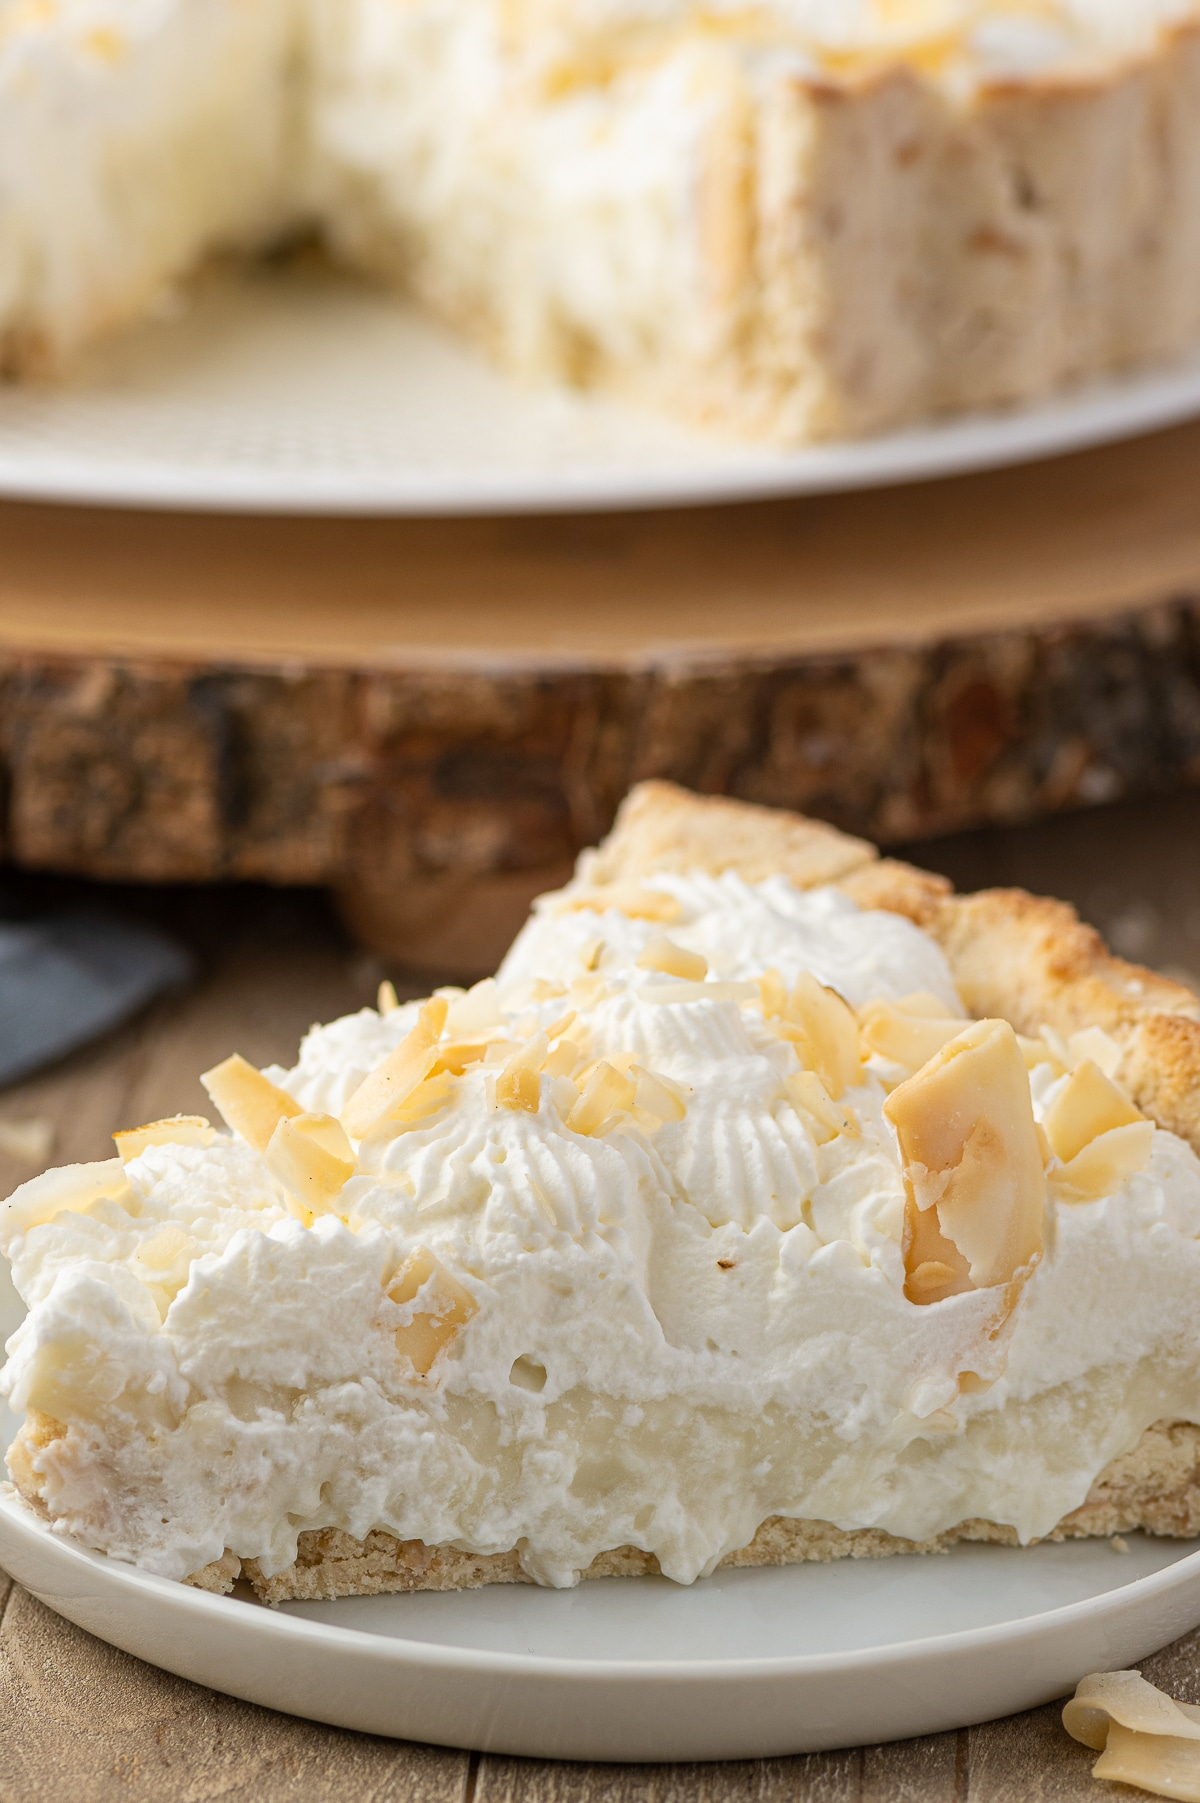 A close up photograph of a single slice of keto coconut cream pie with whipped cream topping and large toasted coconut flakes.